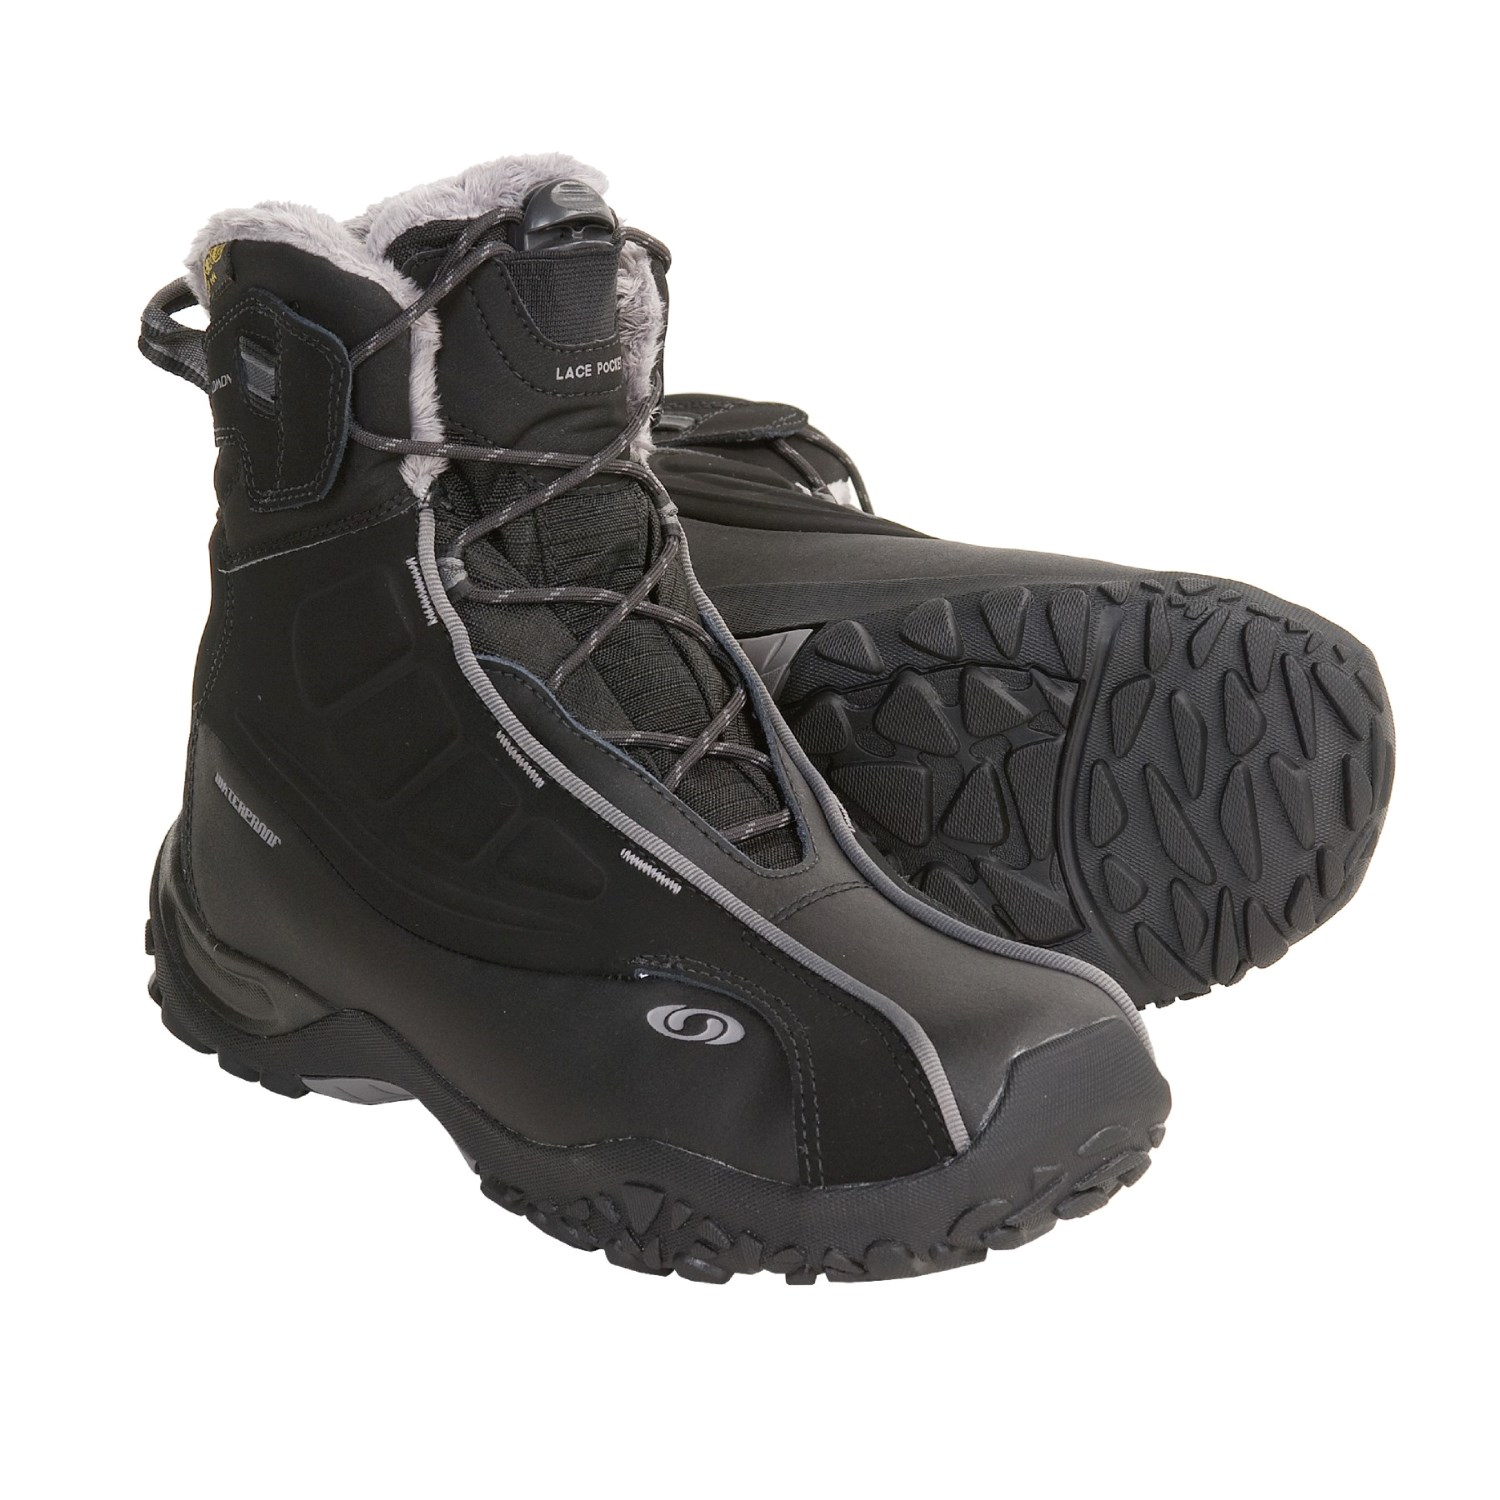 Salomon B52 Thinsulate Boots For Men 2901P Save 39